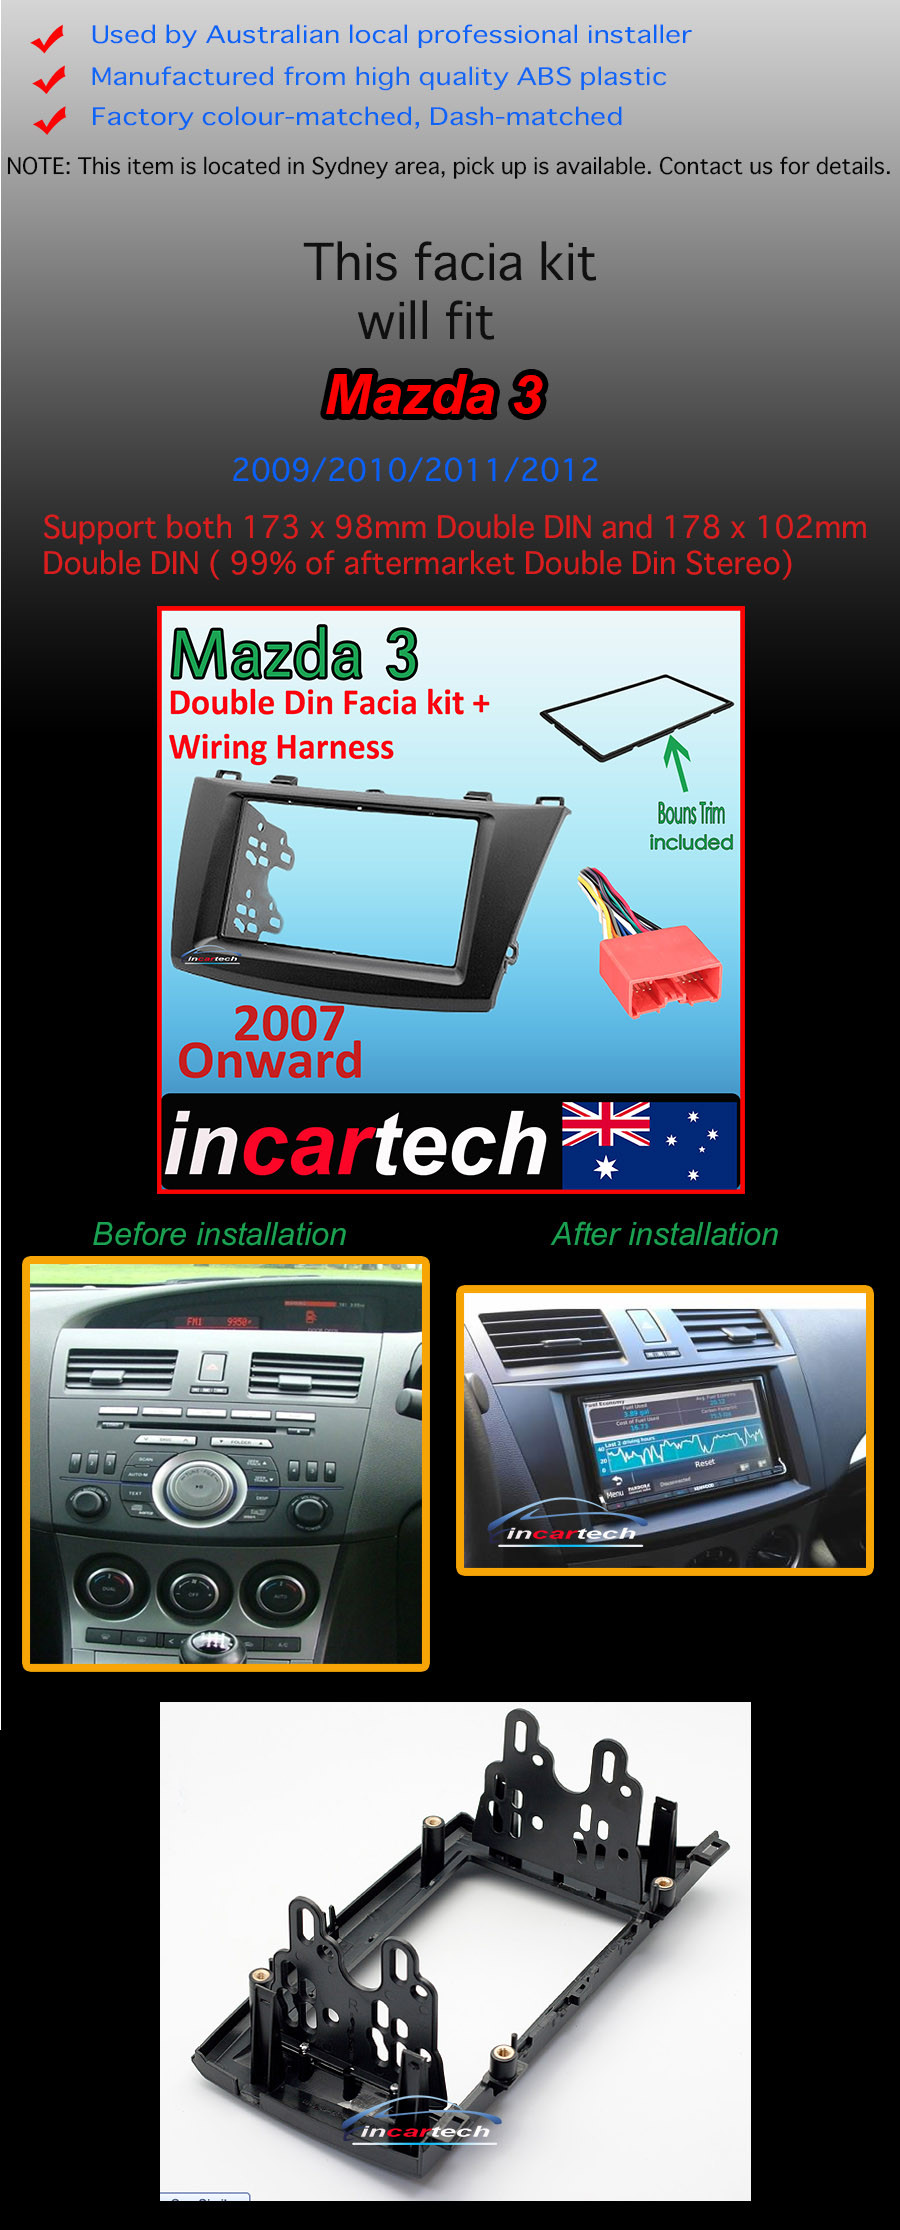 Mazda 3 Bk 2009 Up Facia Kit Fascia Panel Dash Trim Double Din Wiring Harness Categories